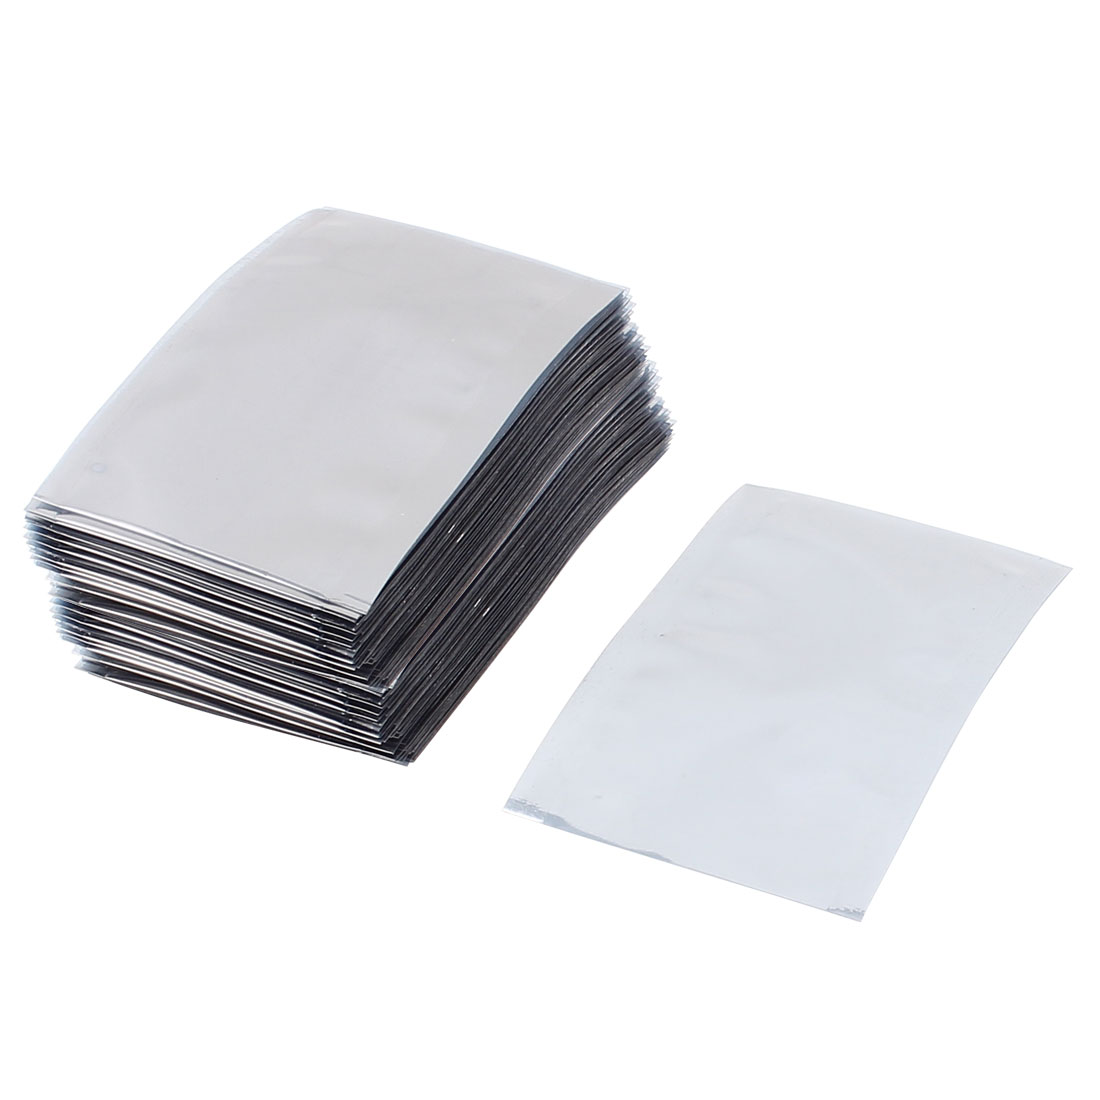 100 Pcs 50mm x 80mm Silver Tone Flat Open Top Anti Static Bag For Electronics